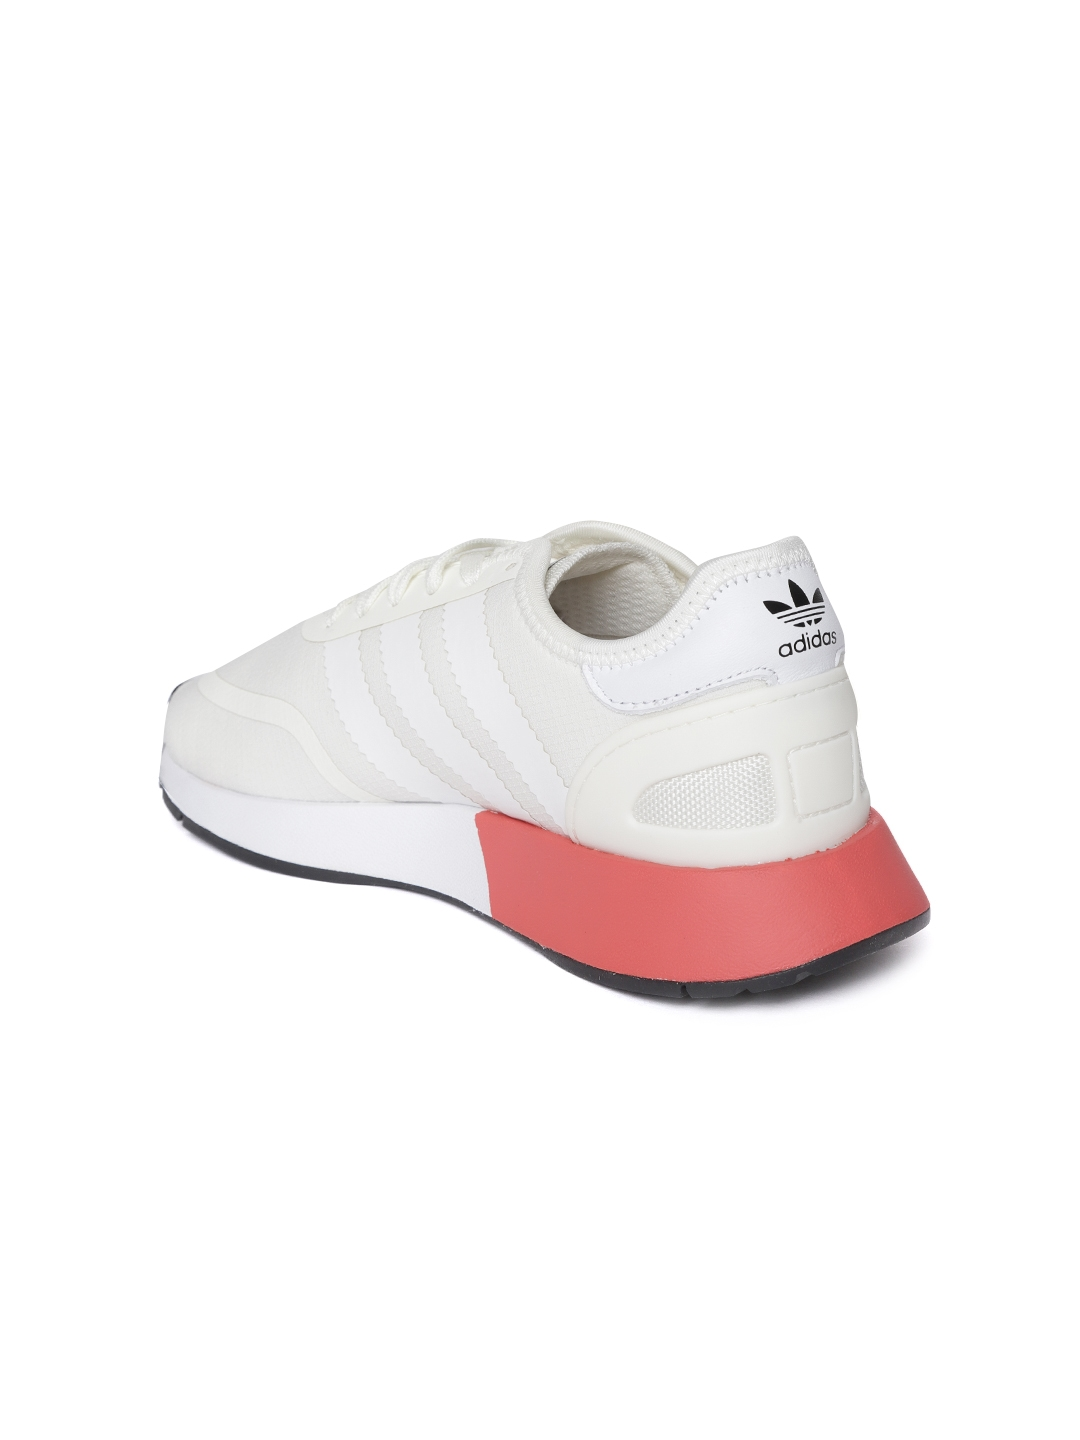 new style 55346 e353e ADIDAS Originals Women Off-White N-5923 Sneakers